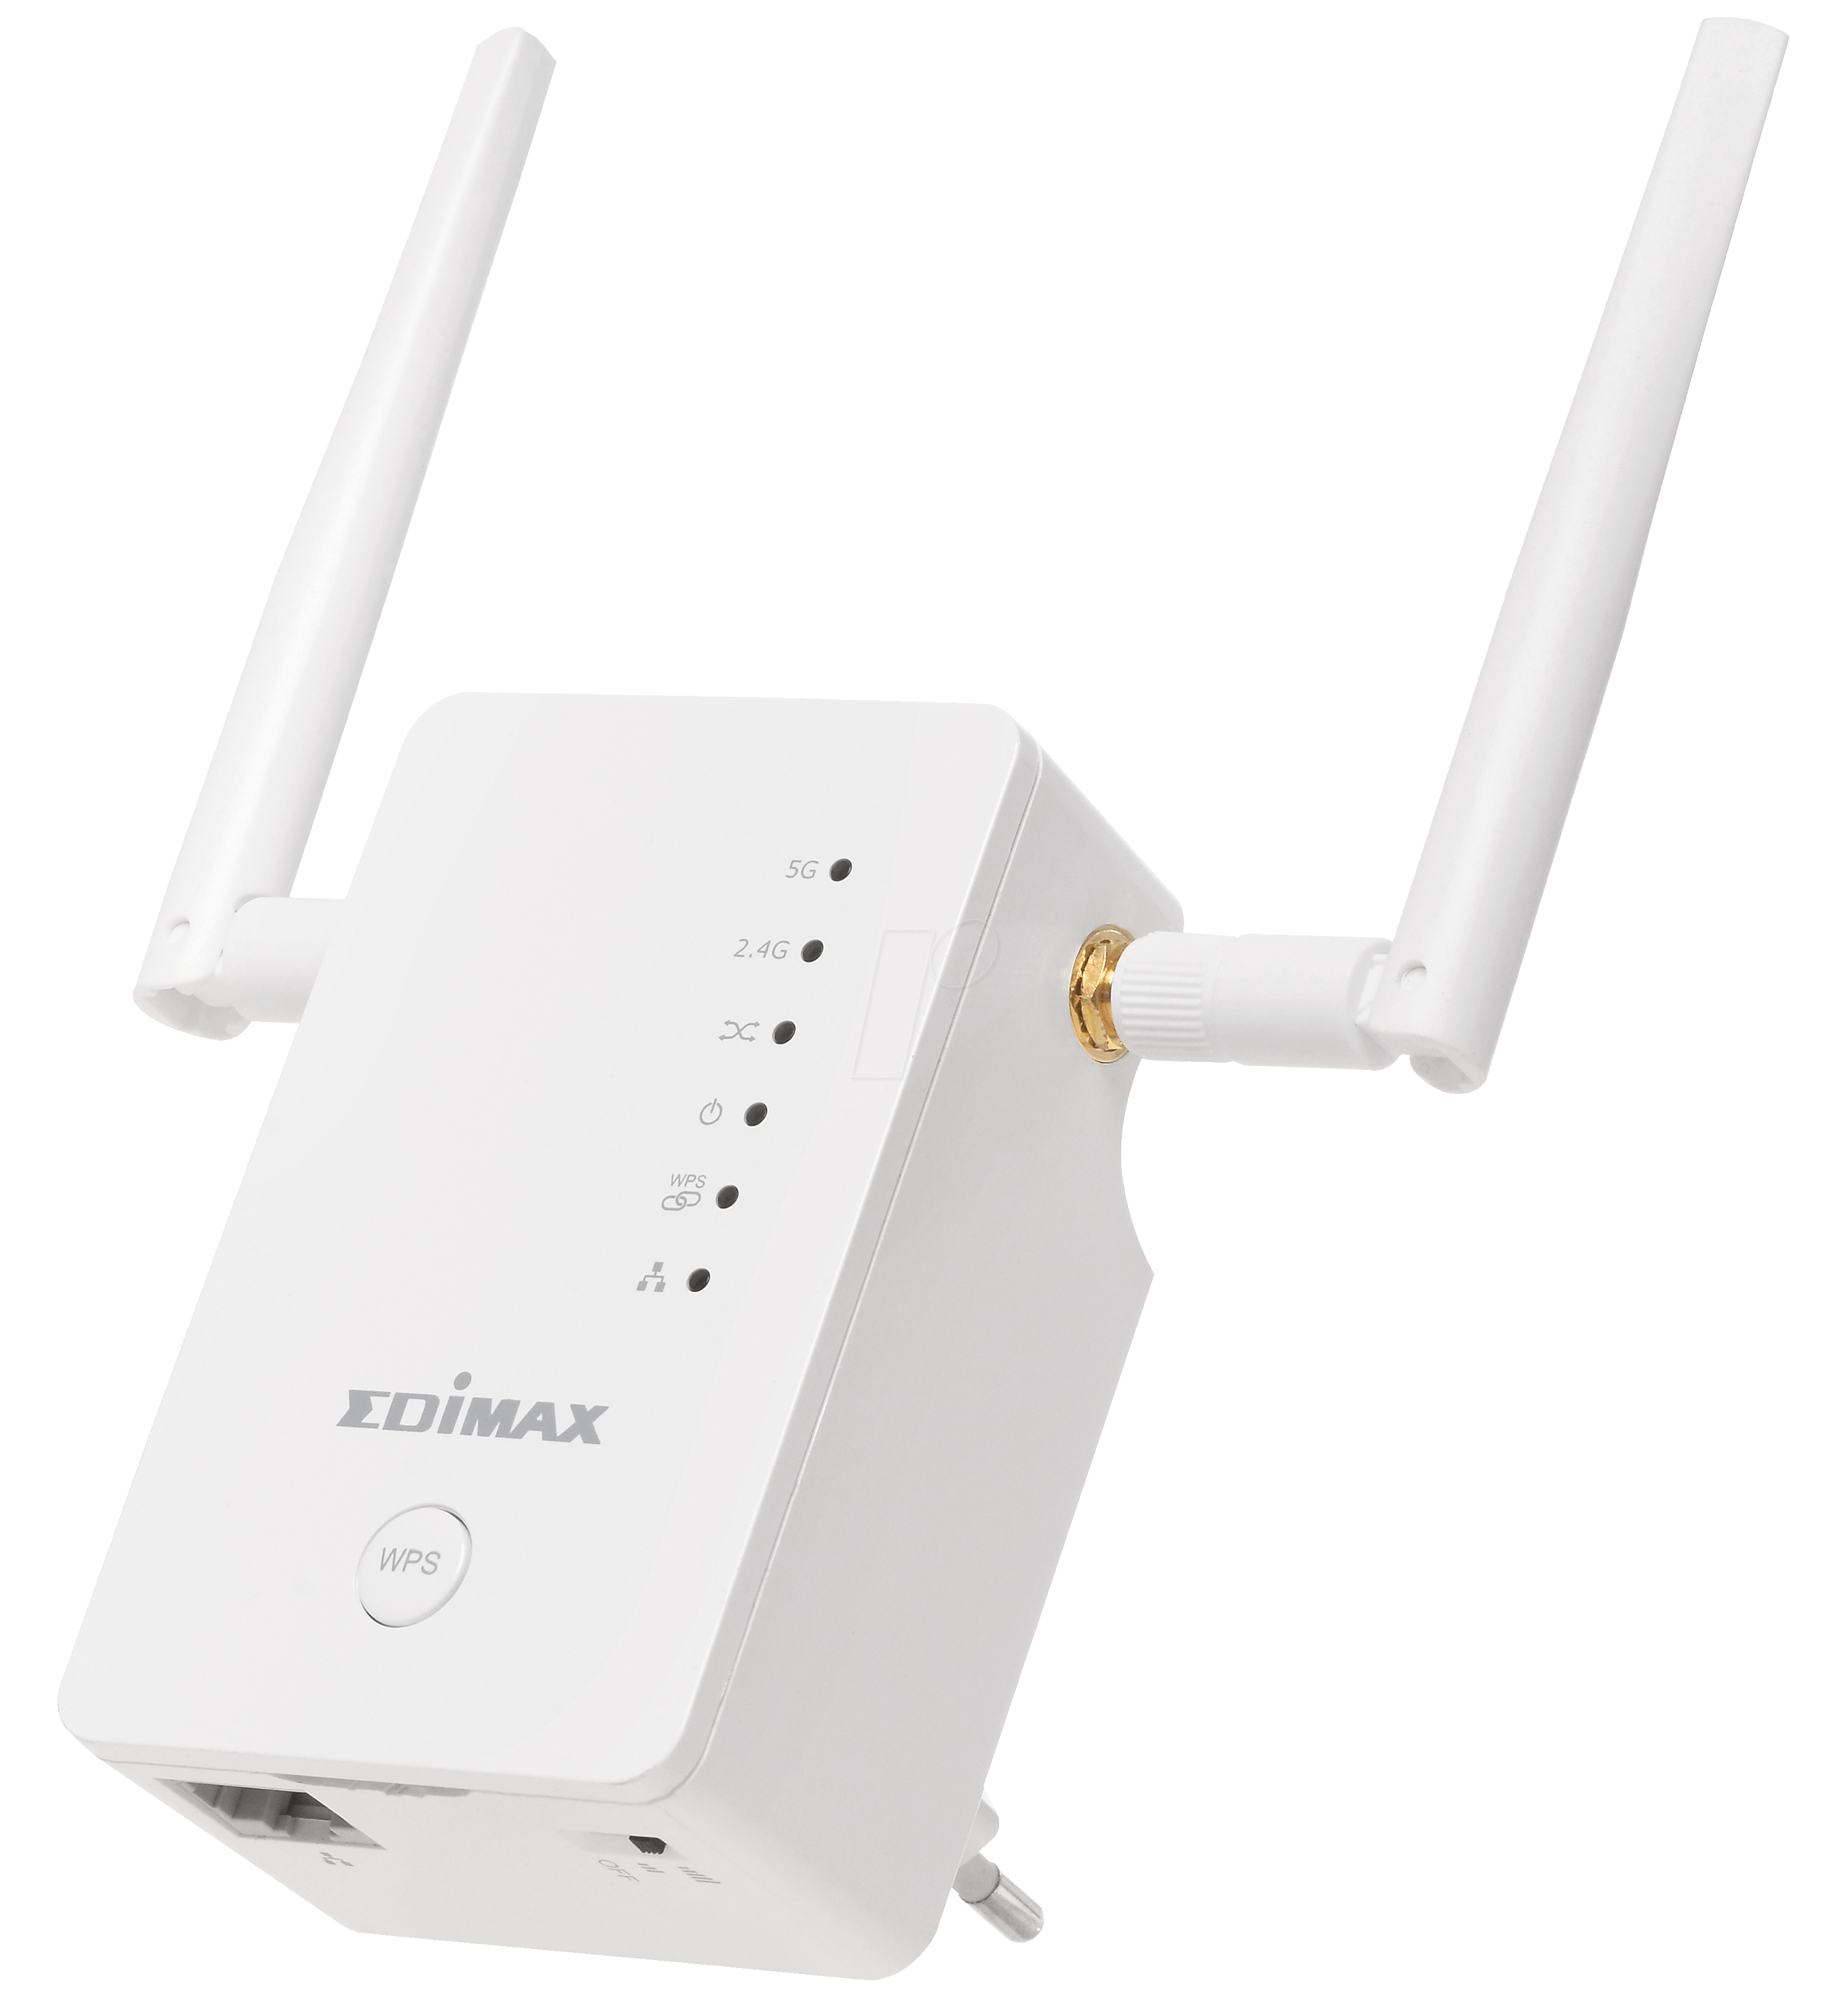 Edimax Ar 7288wna N300 Wireless Adsl Modem Router Tp Link Mr3420 Usb 3gevdo Edi Re11k Re11 Wlan Ac1200 Access Point Roaming Kit At Reichelt Re11sk 02 Indexhtml